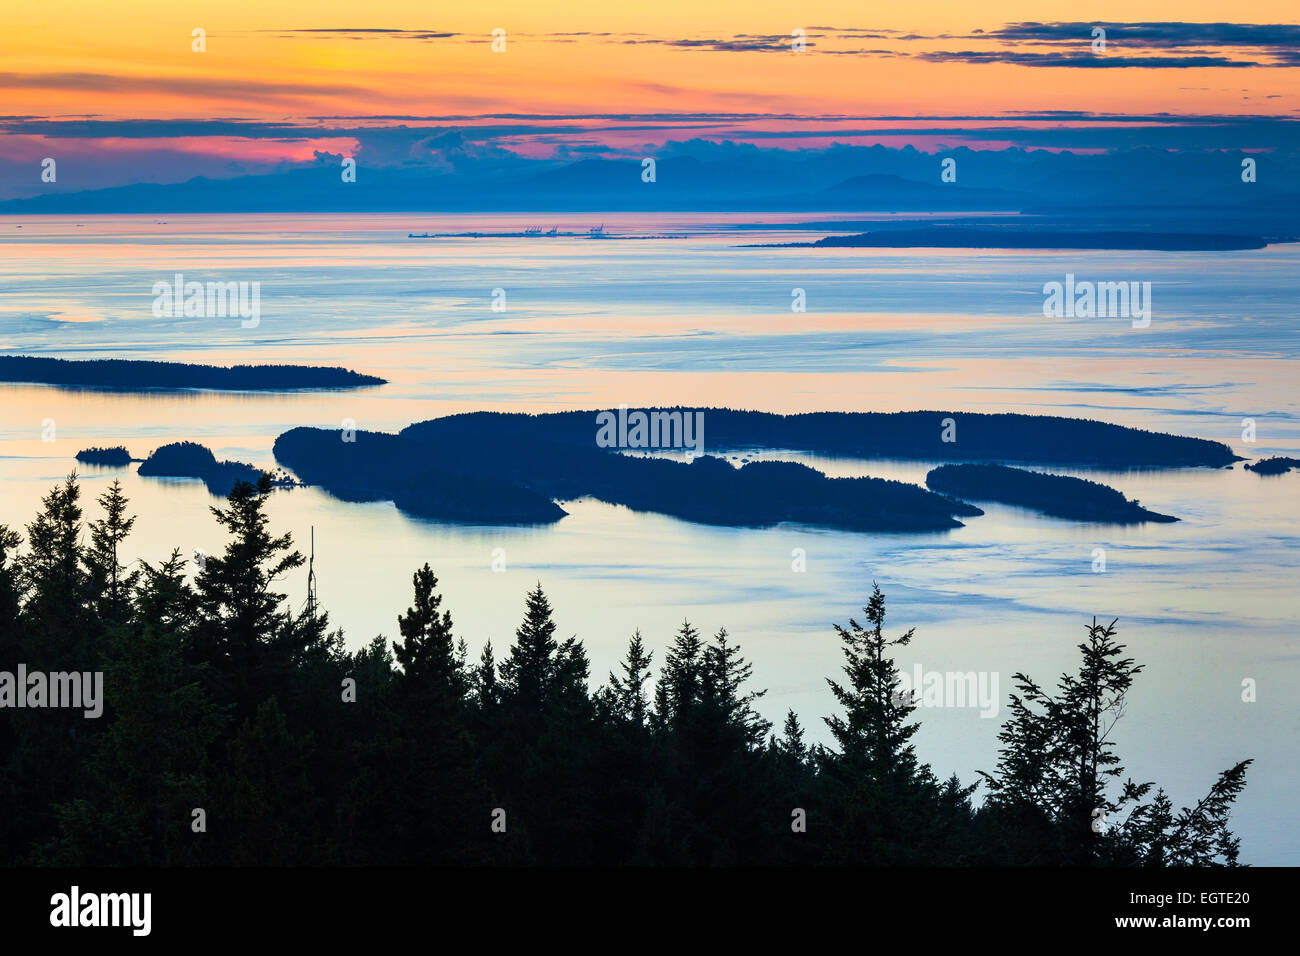 Mount Constitution is a mountain on Orcas Island, and the highest point in the San Juan Islands. - Stock Image